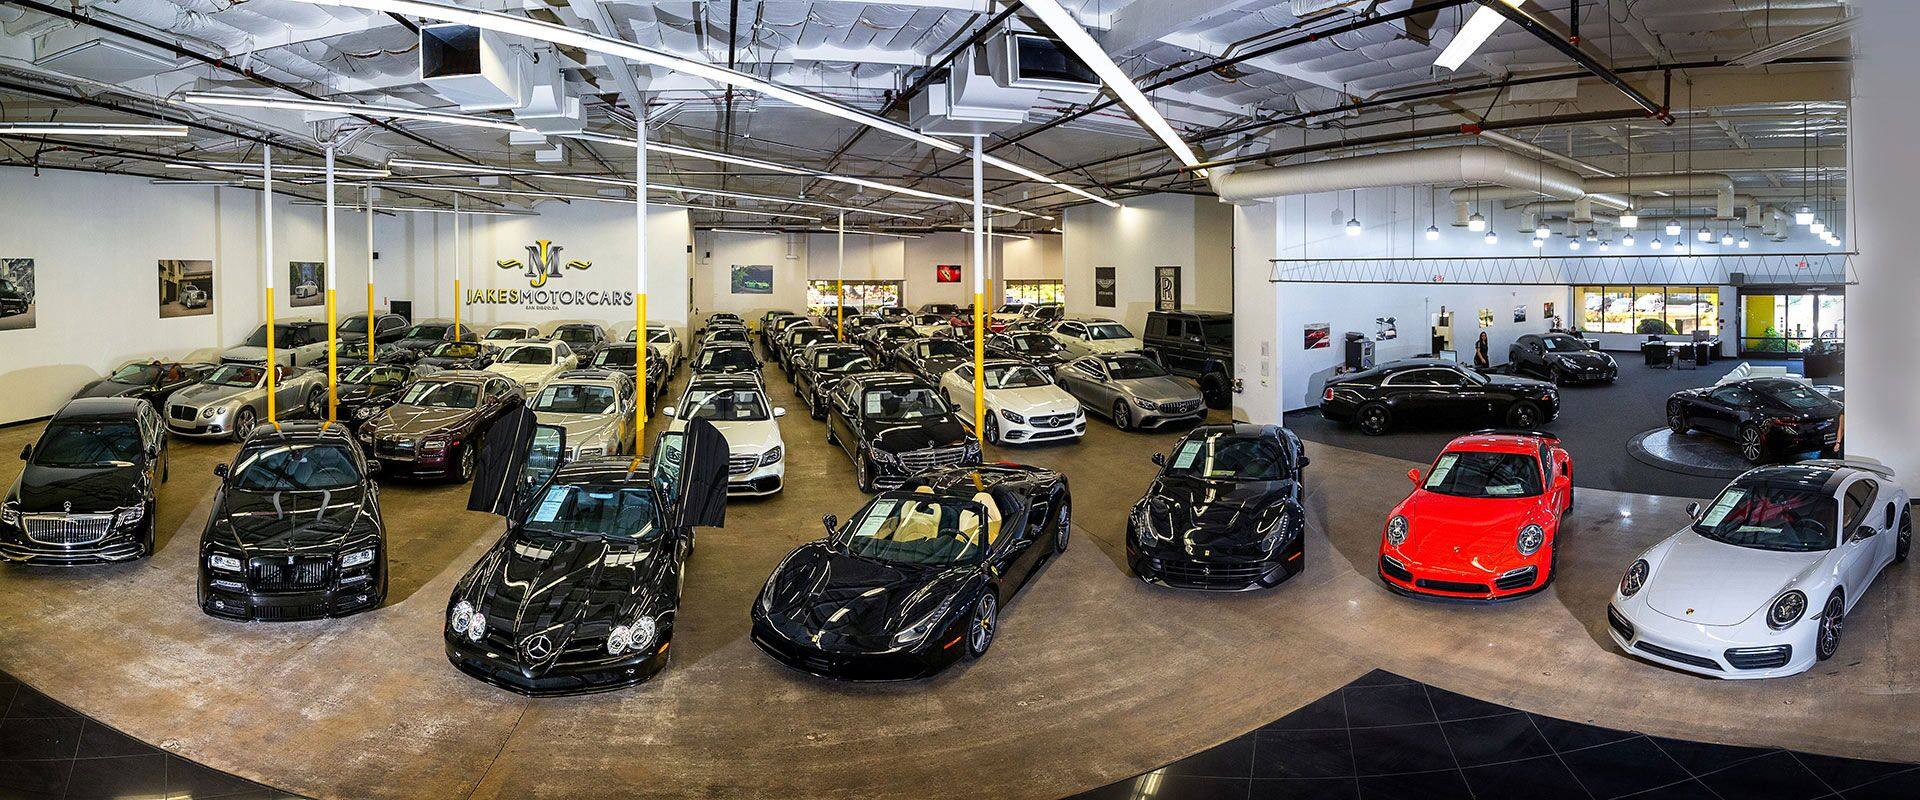 Exotic Car Dealerships Near Me >> Used Vehicle Dealership San Diego Ca Jake S Motorcars